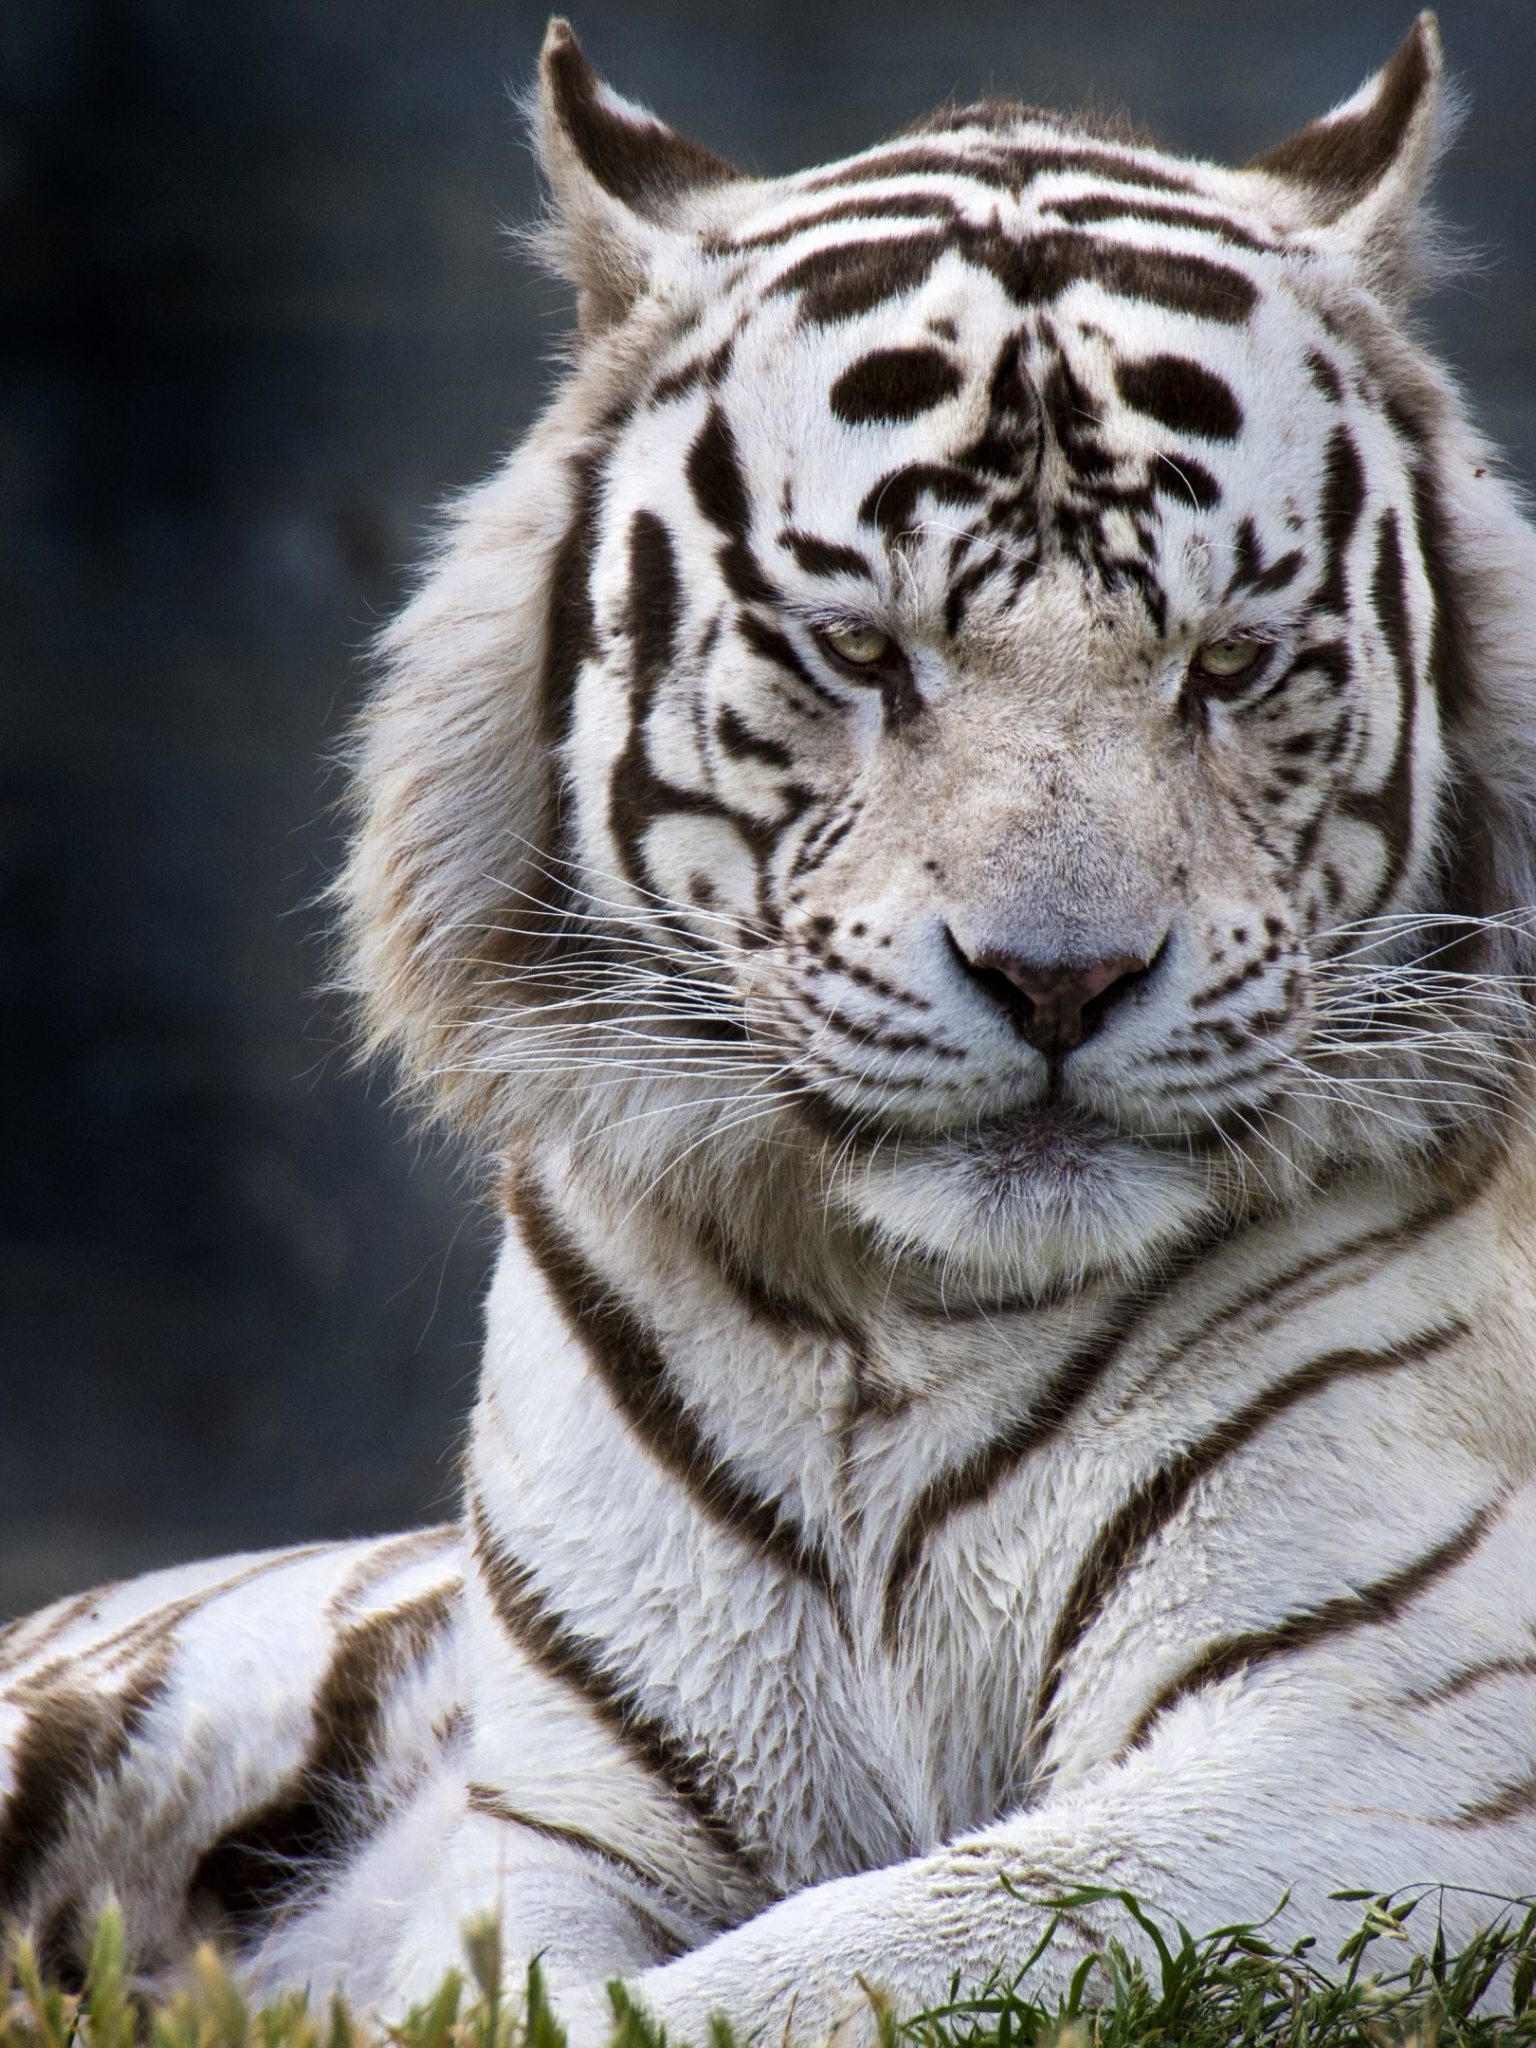 Free Download Ultra Hd White Tiger Wallpaper Ultra Hd Download 4k Computer 3840x2160 For Your Desktop Mobile Tablet Explore 19 4k Tiger Wallpapers 4k Tiger Wallpapers Tiger Wallpapers Wallpaper Tiger